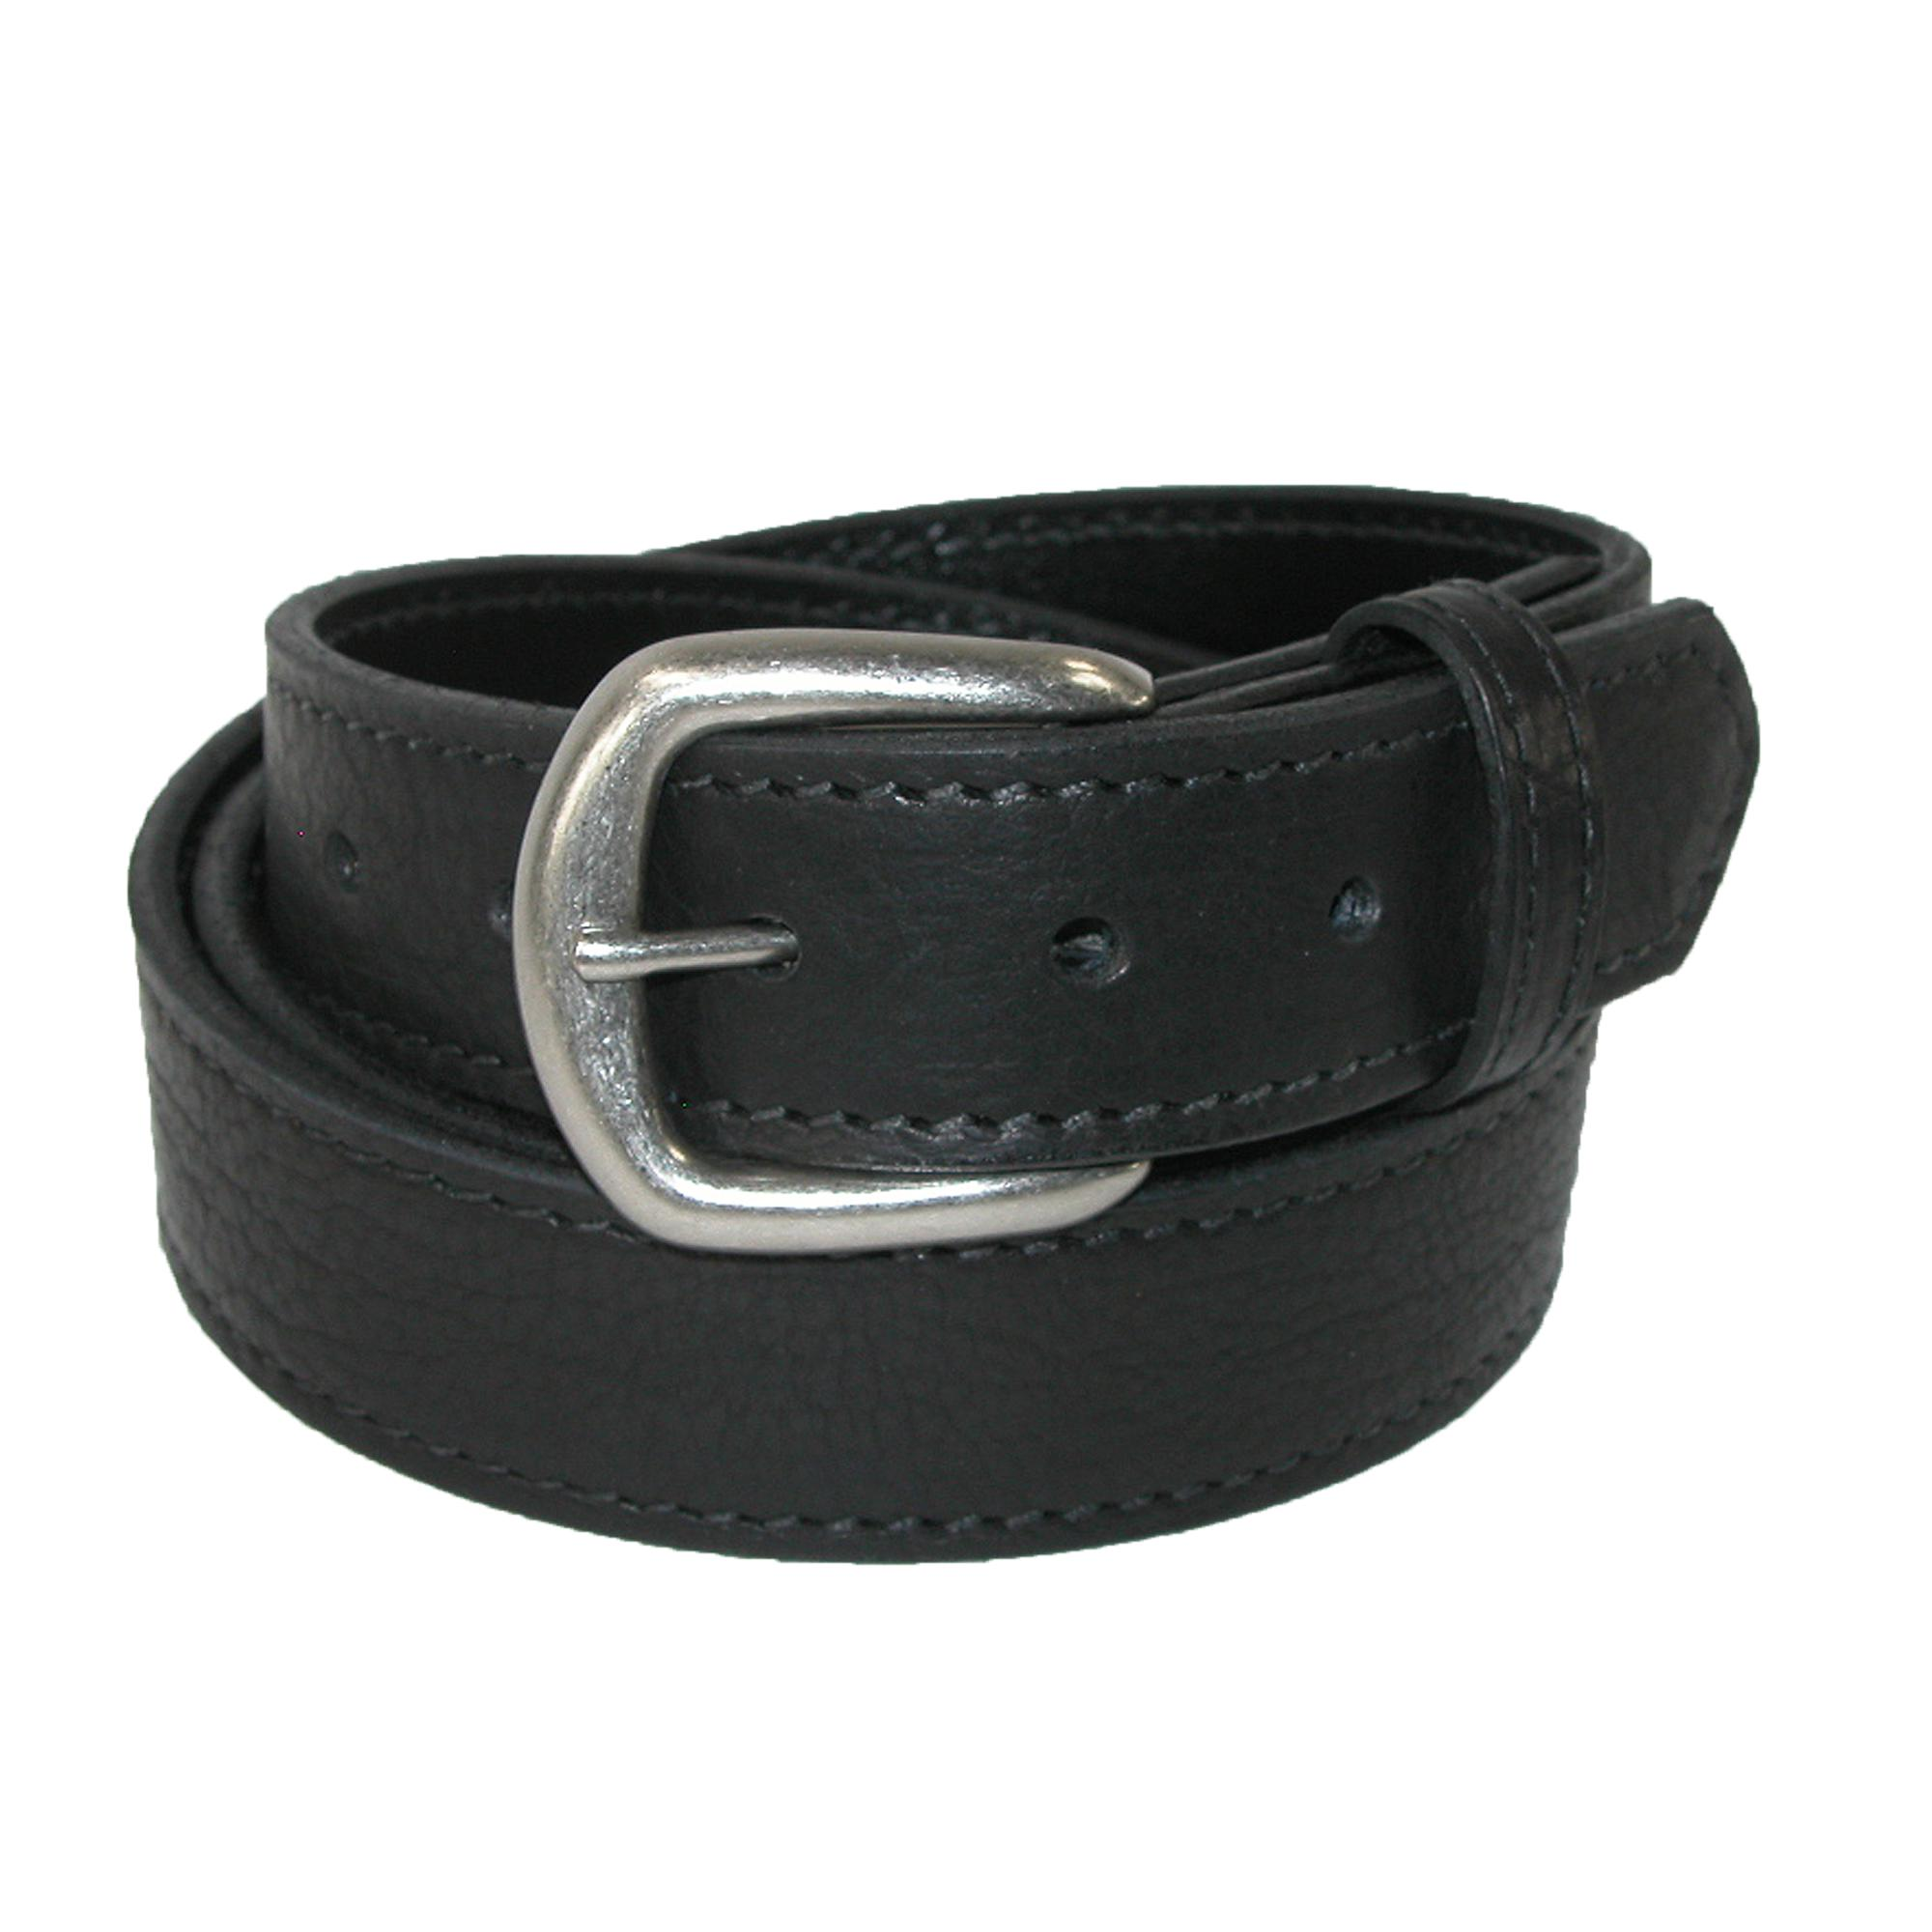 Boston Leather Mens Big & Tall Bison Leather Belt With Removable Buckle